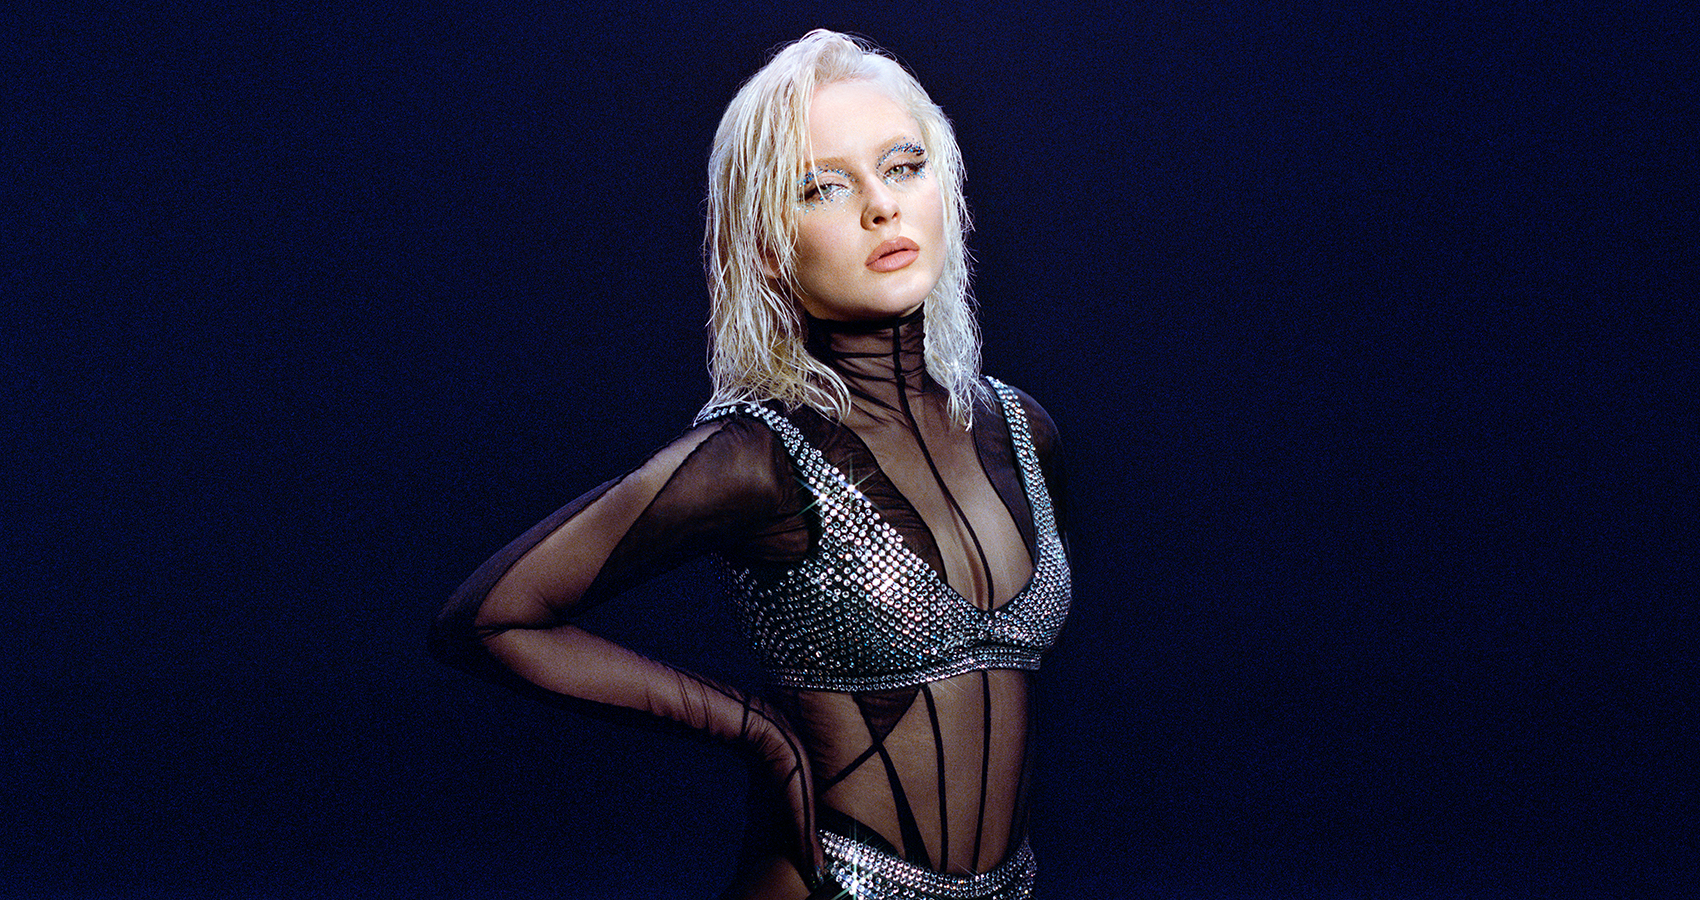 Stepping Into 'Love Me Land' With Zara Larsson